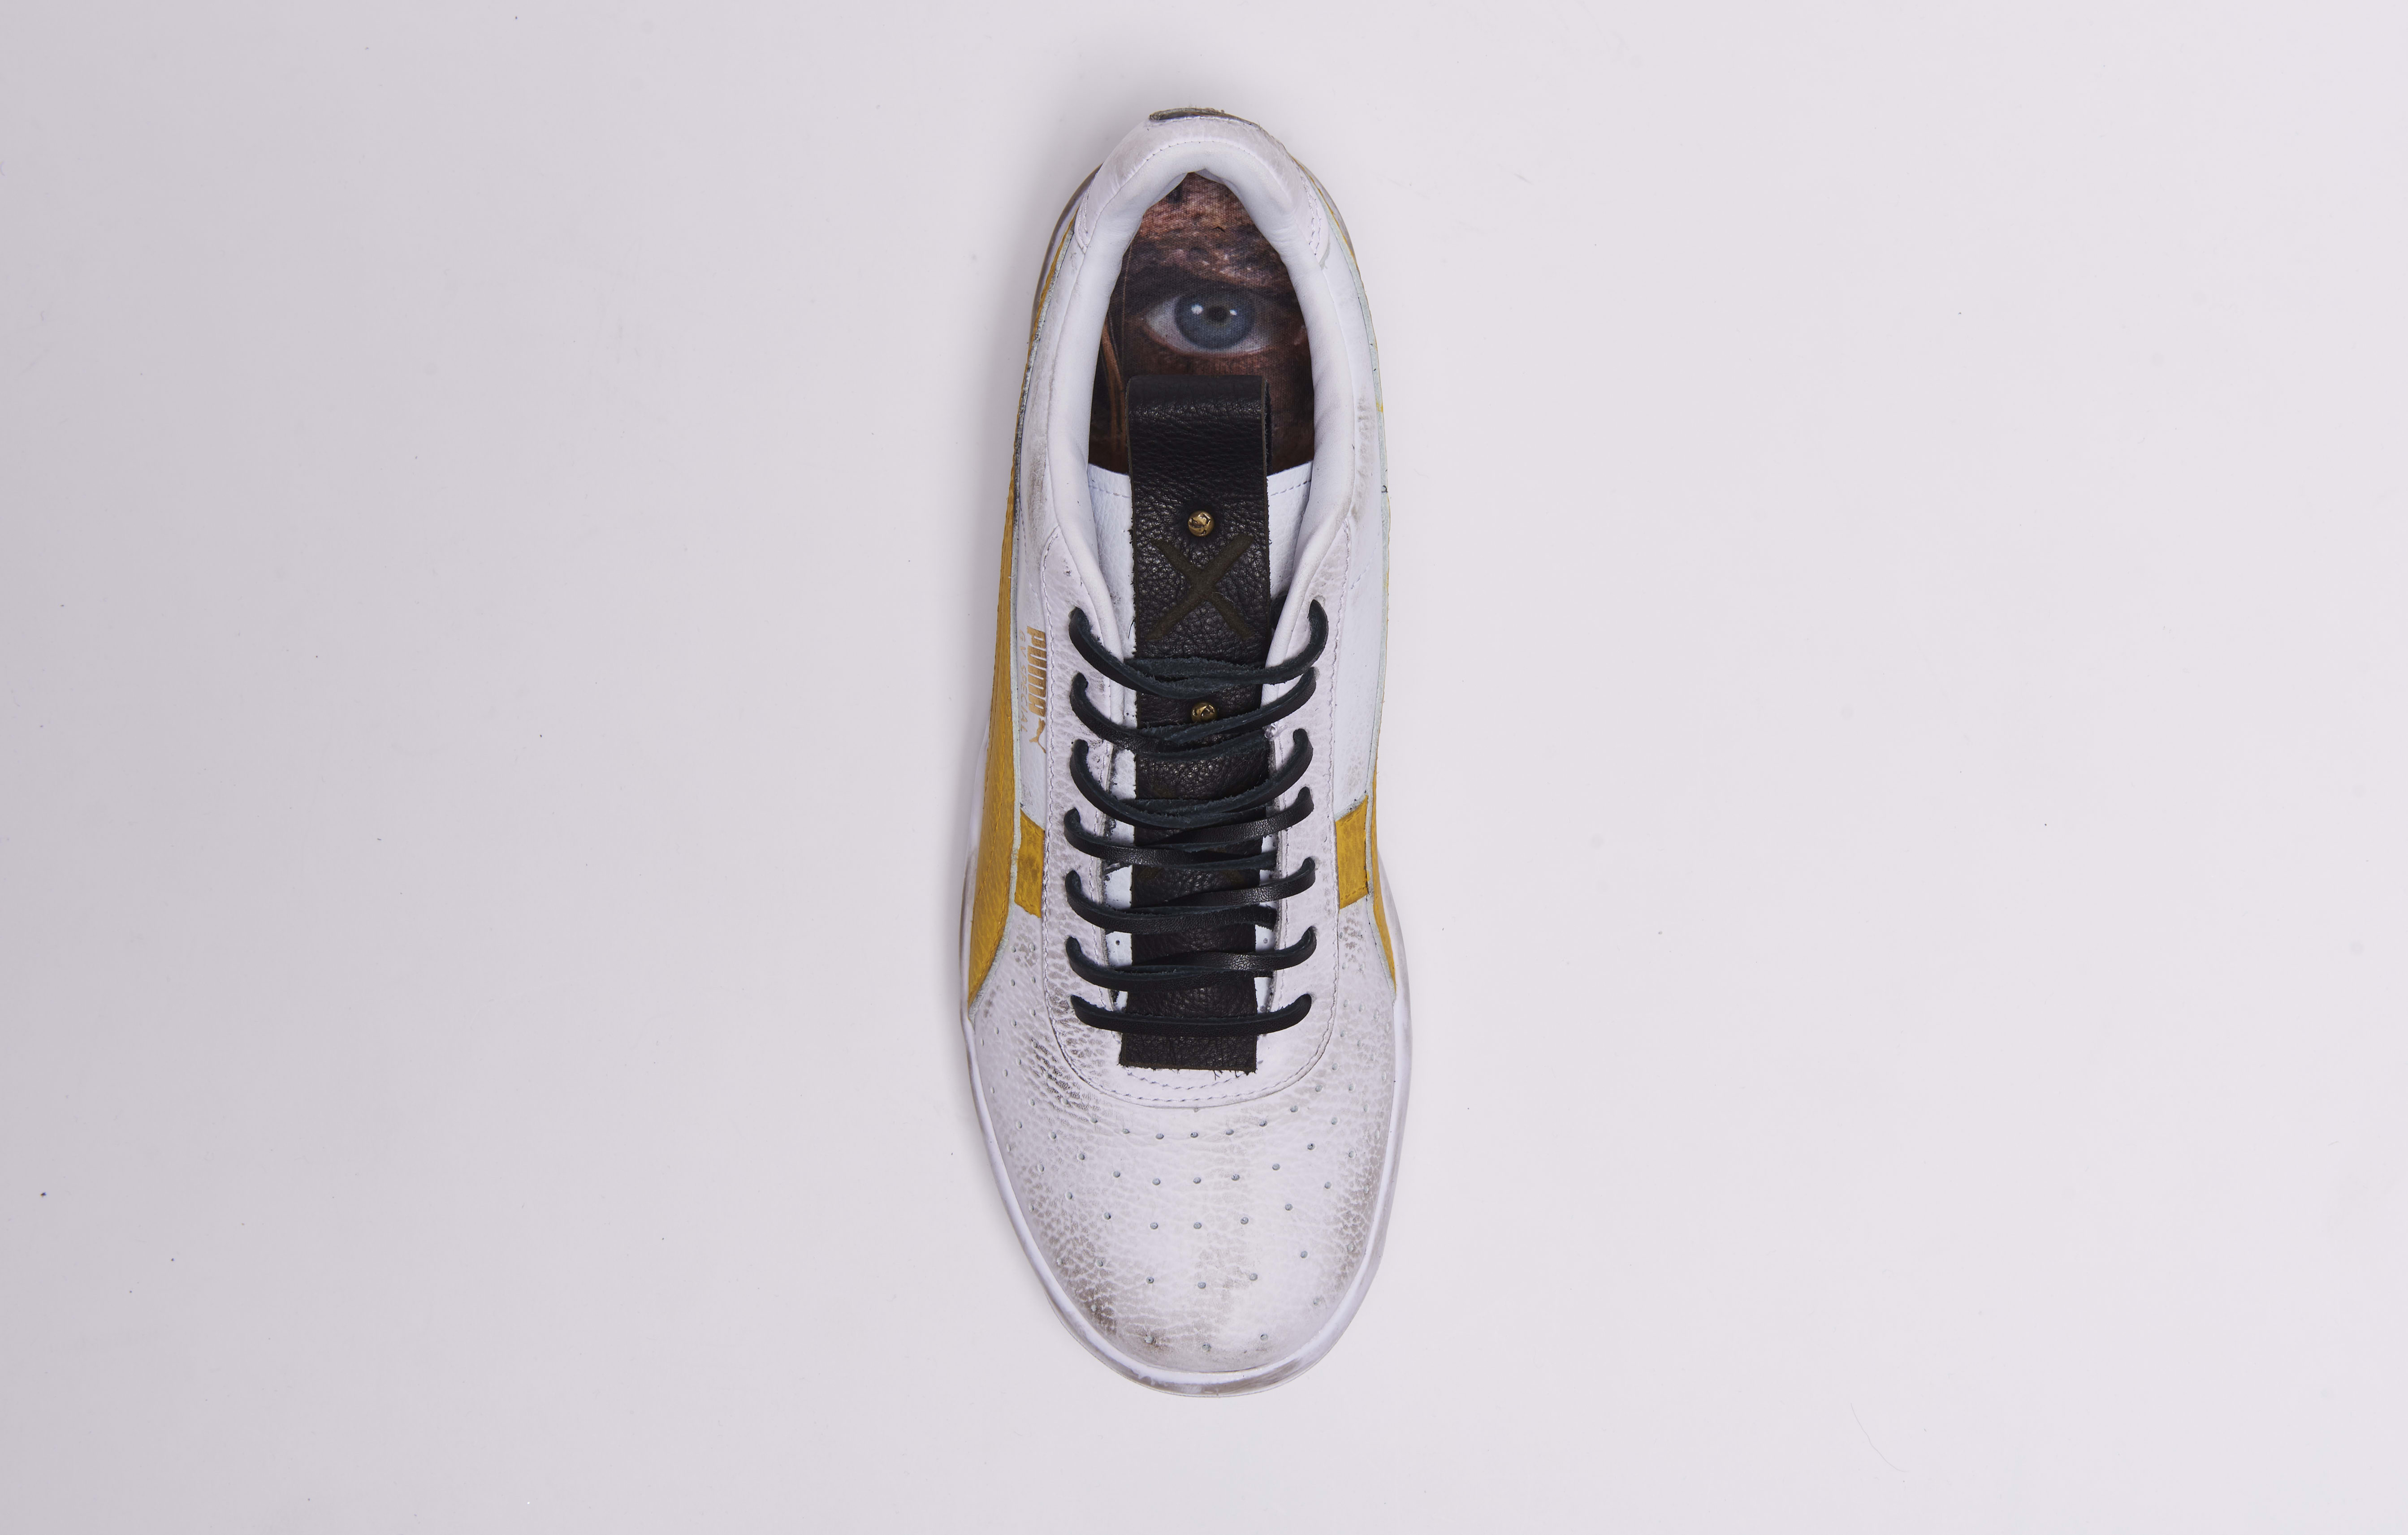 'The Walking Dead' x Puma GV Special (Top)